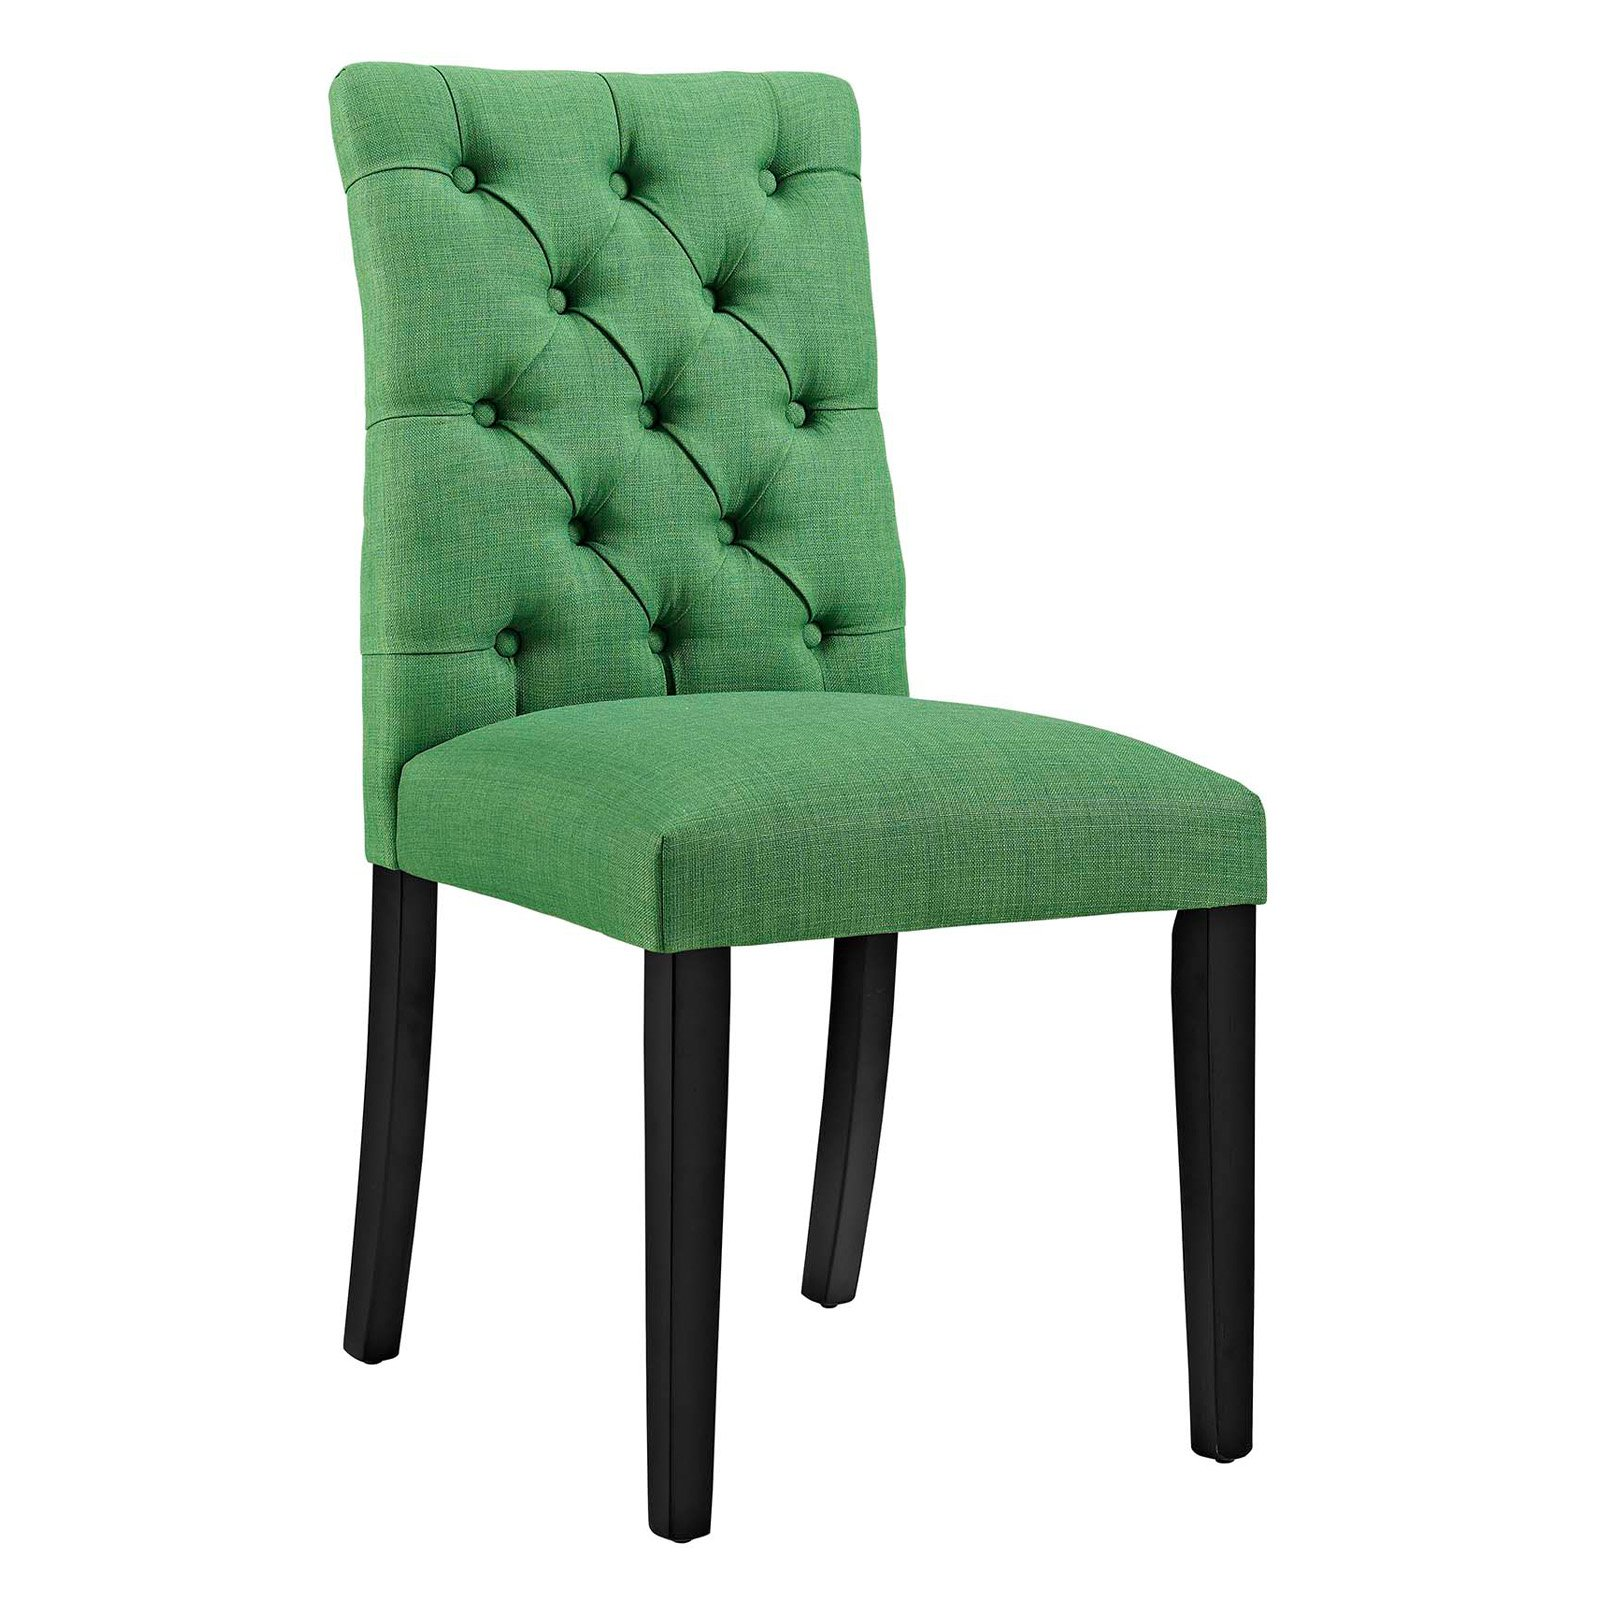 Modway Duchess Upholstered Dining Chair, Multiple Colors